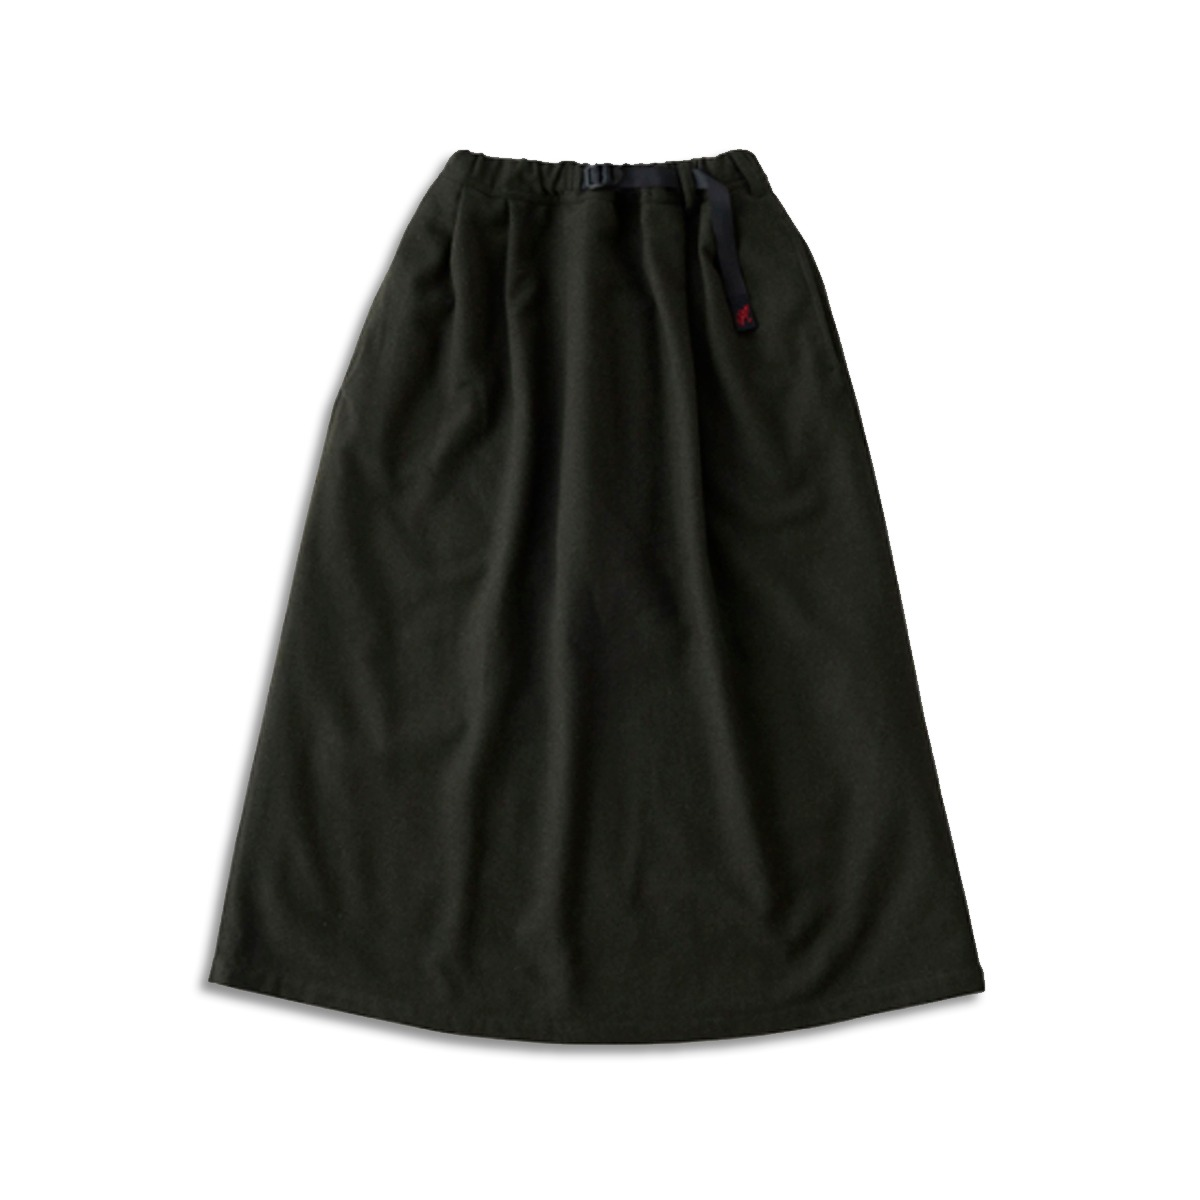 [GRAMICCI] WOOL BLEND LONG FLARE SKIRT 'DEEP OLIVE'